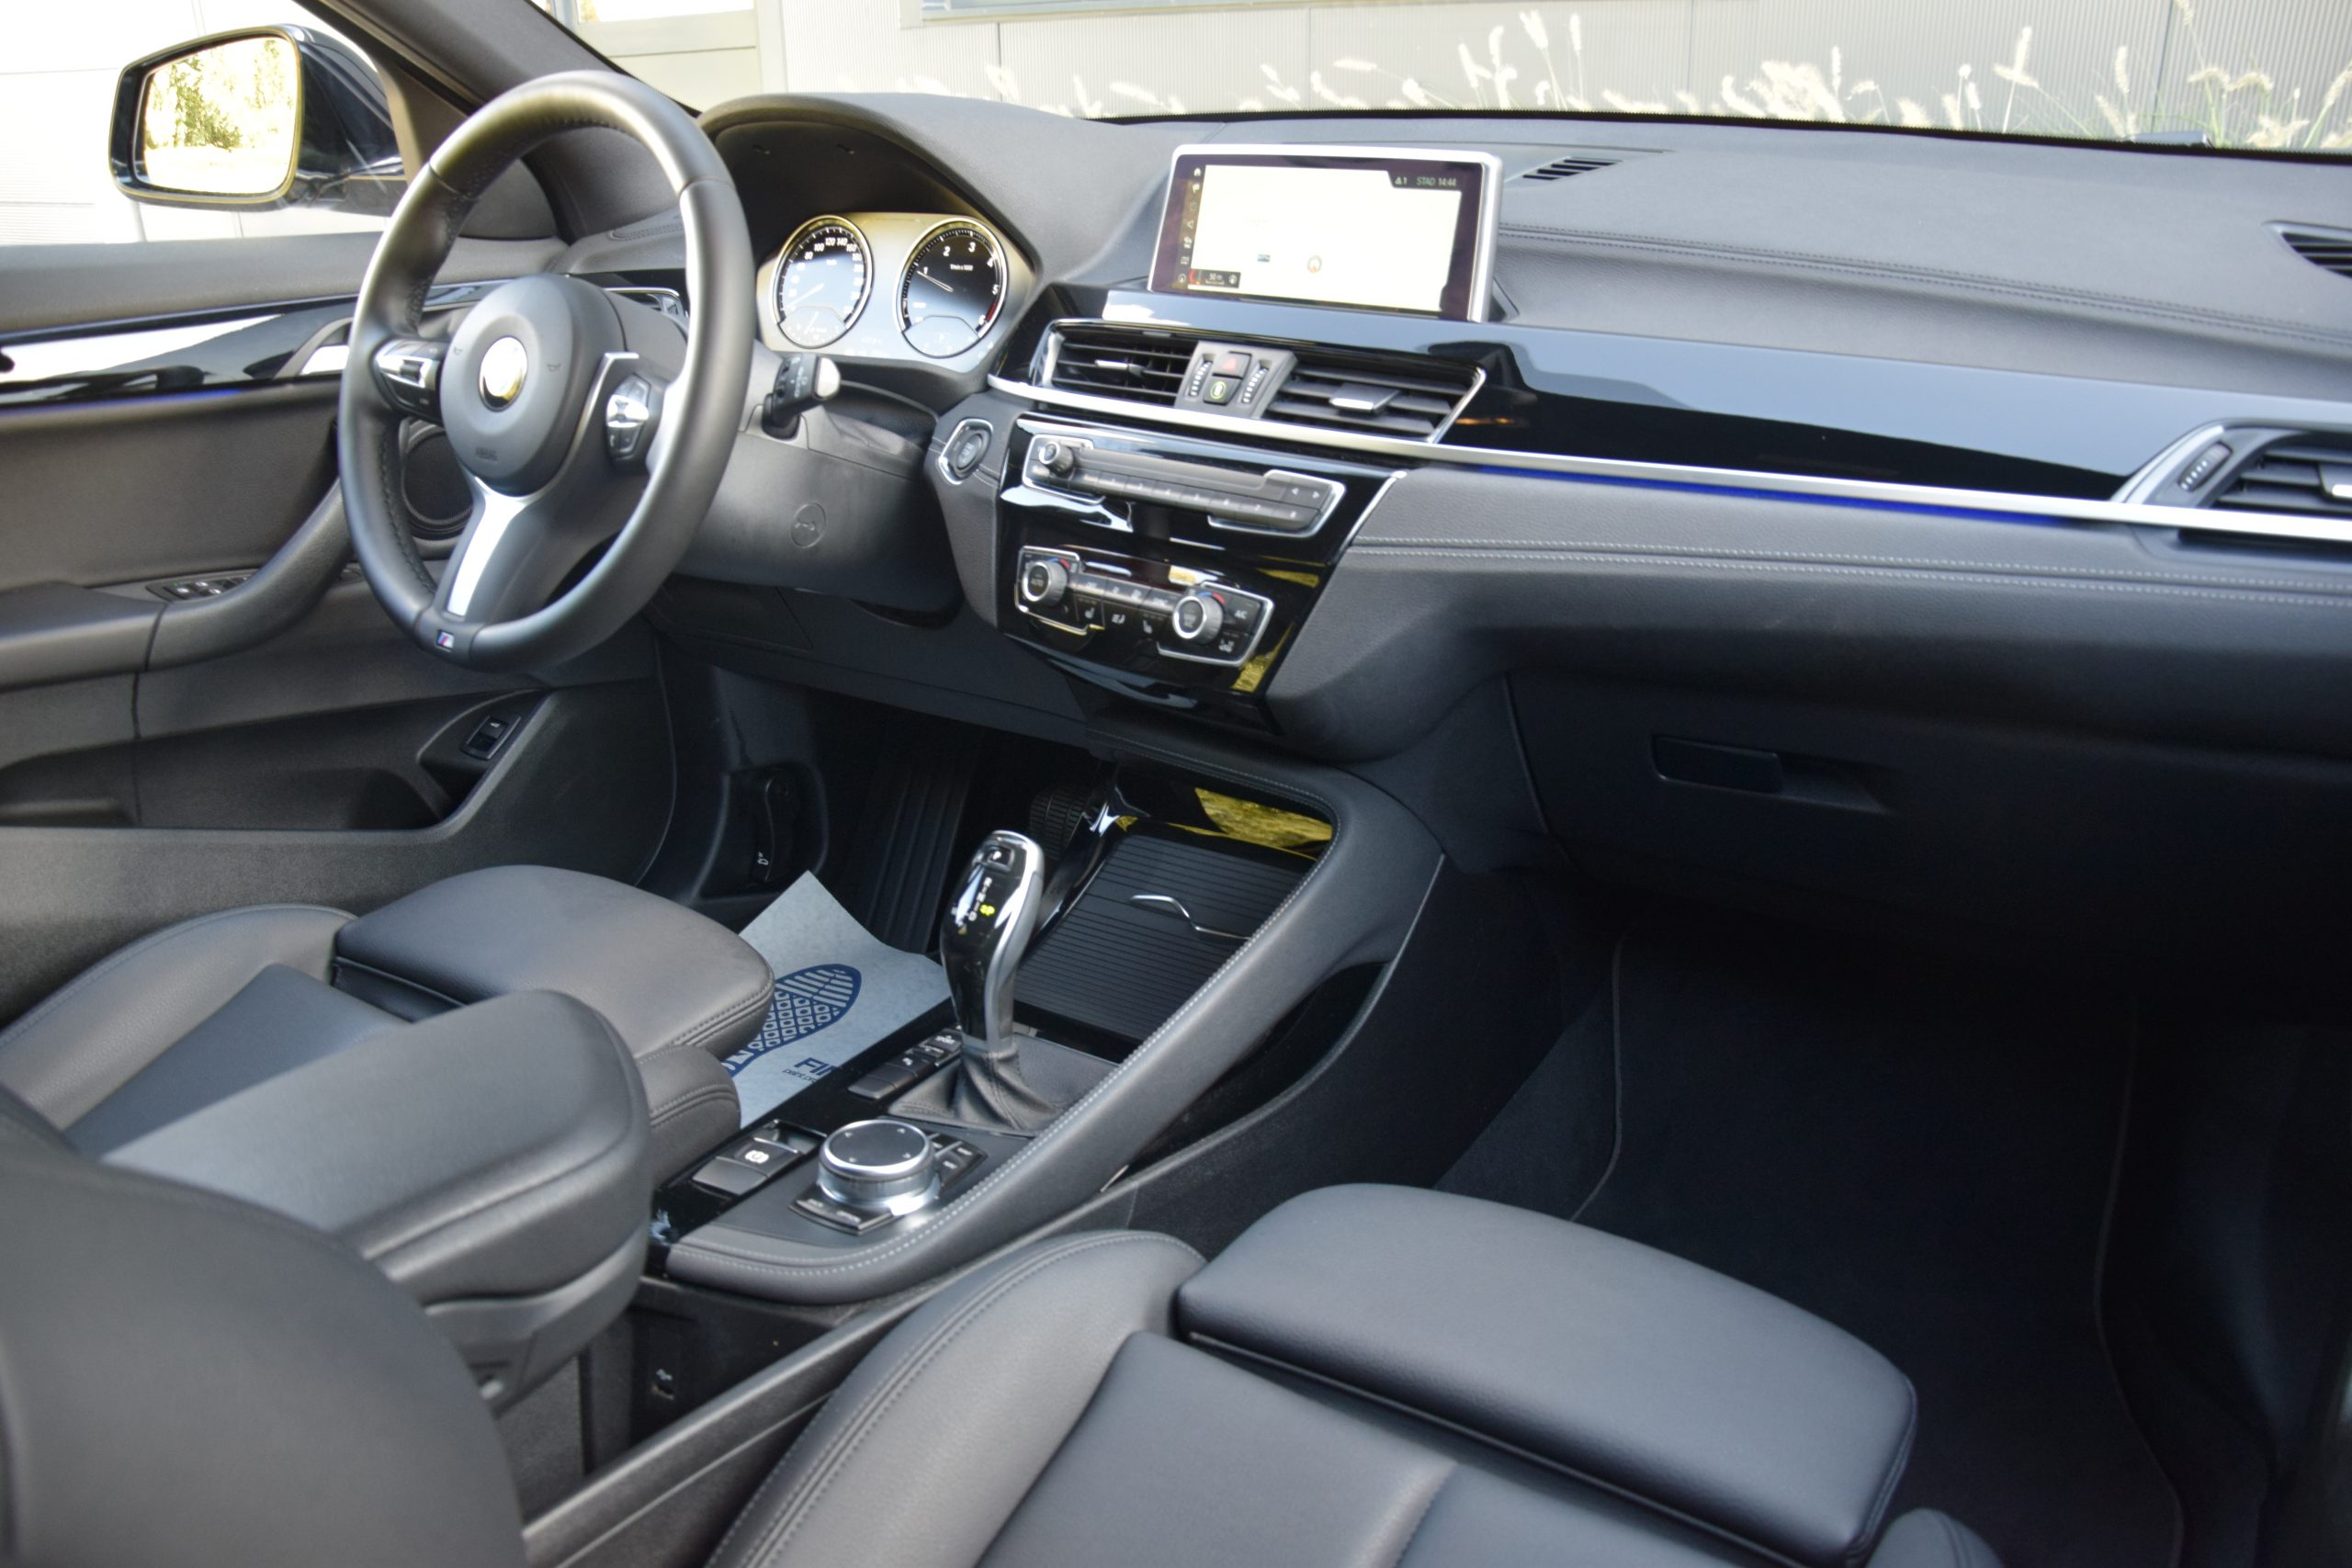 BMW X2 2.0 dA sDrive18 01/2019 – Full Option!!